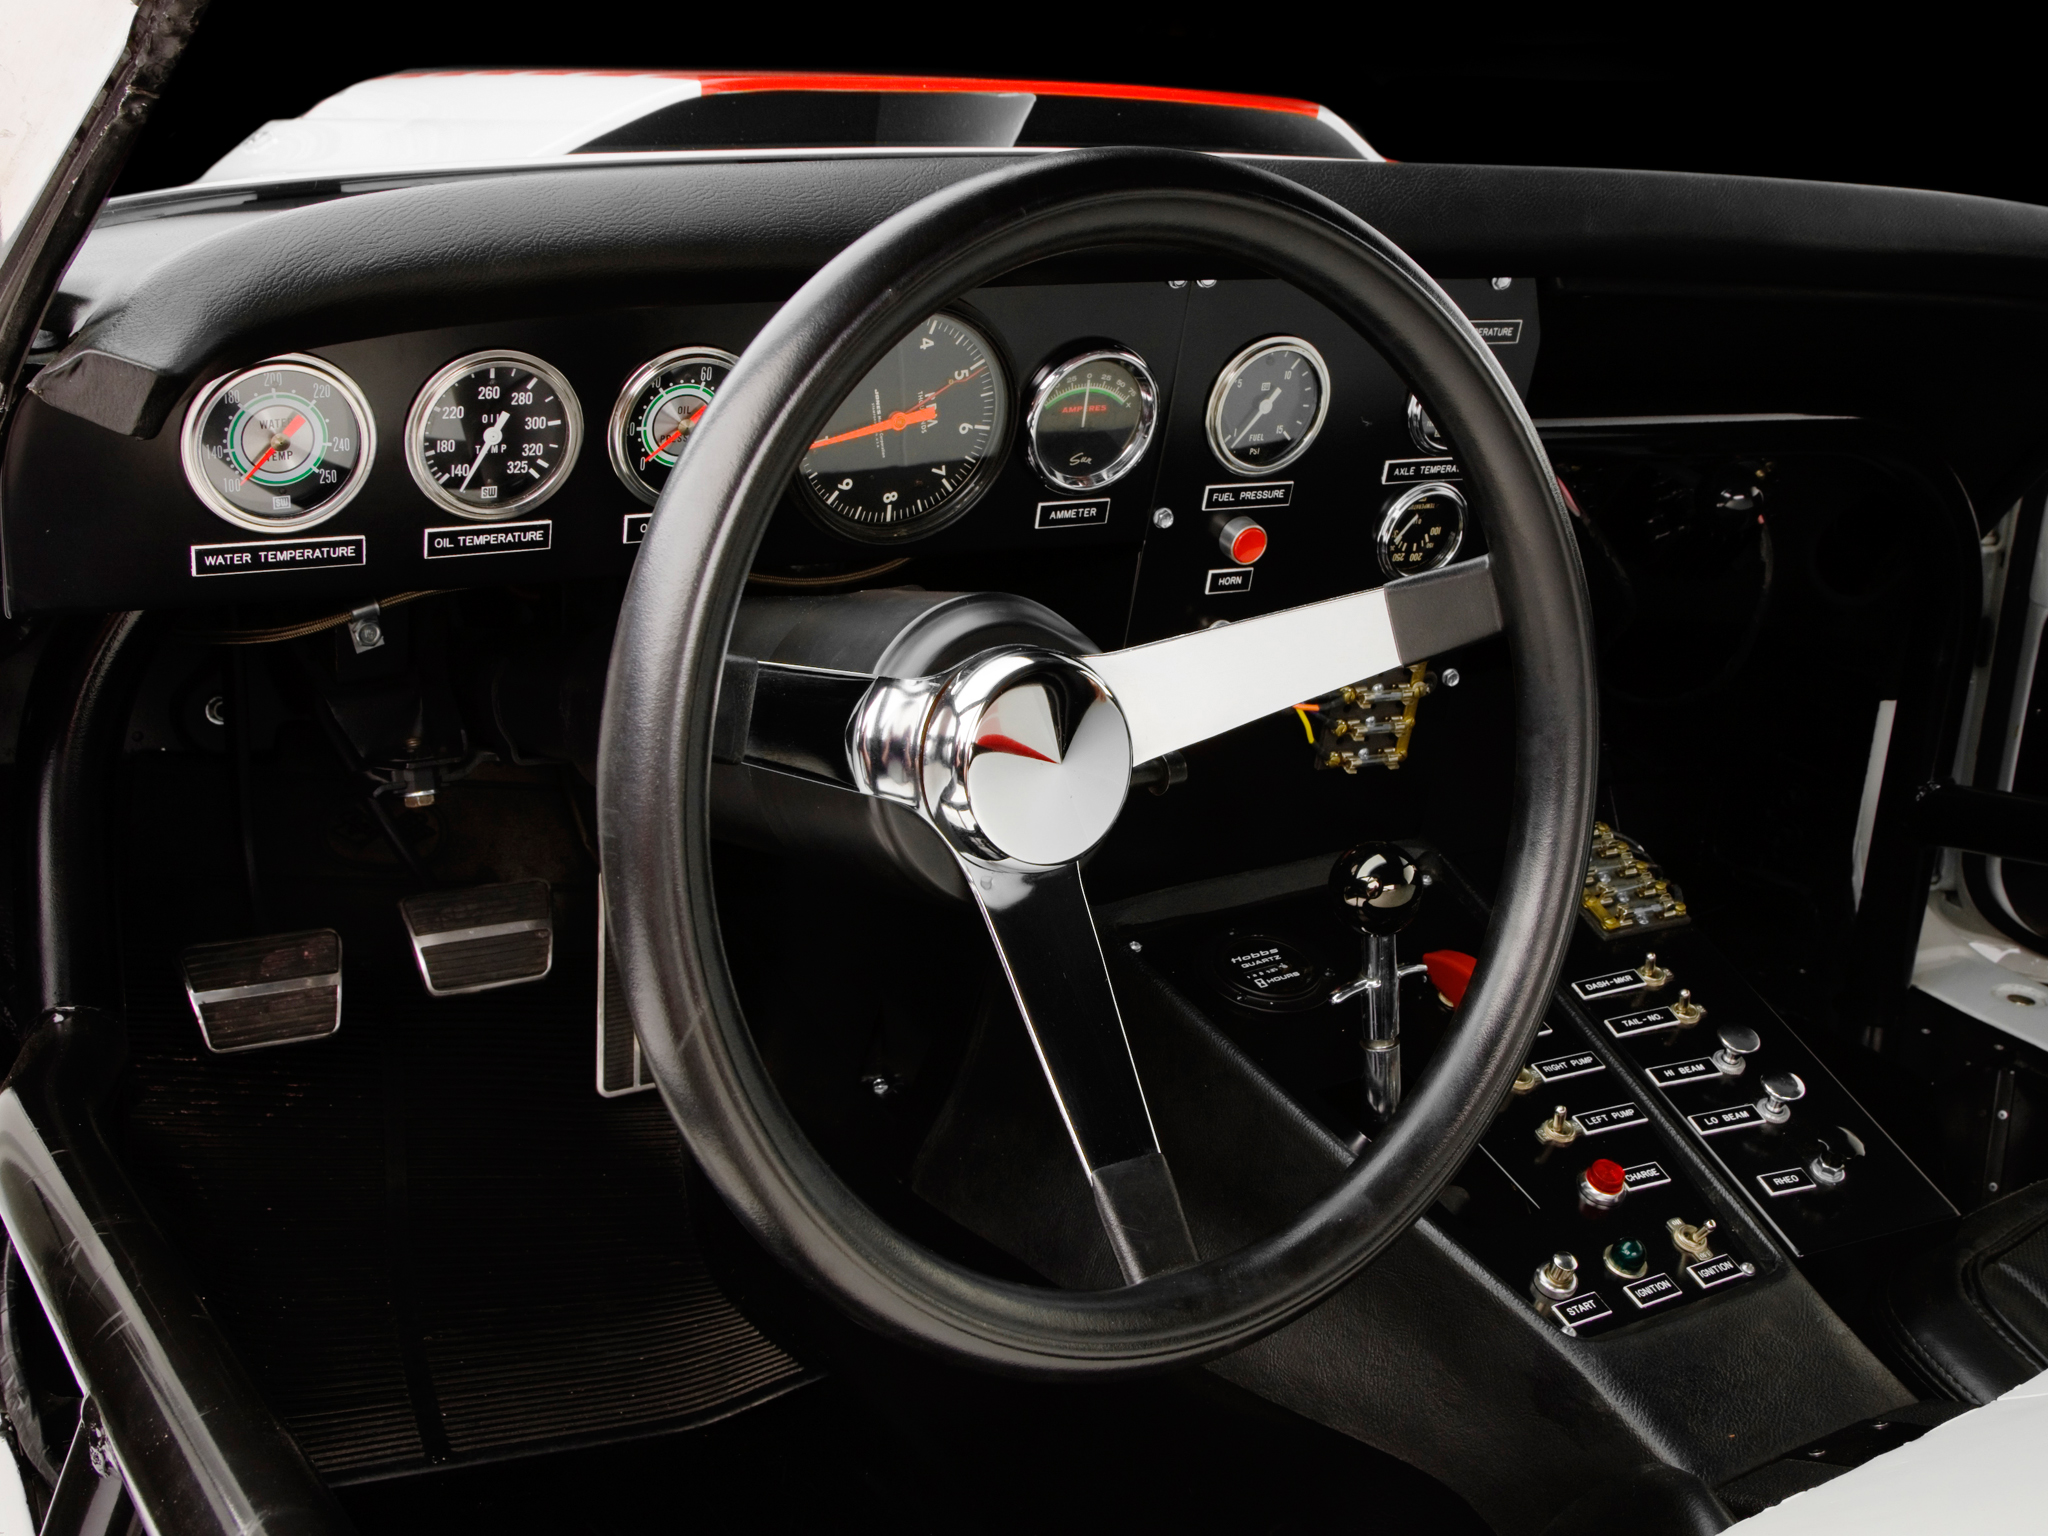 1968 chevrolet corvette l88 convertible race car da 3 race racing muscle classic supercar. Black Bedroom Furniture Sets. Home Design Ideas